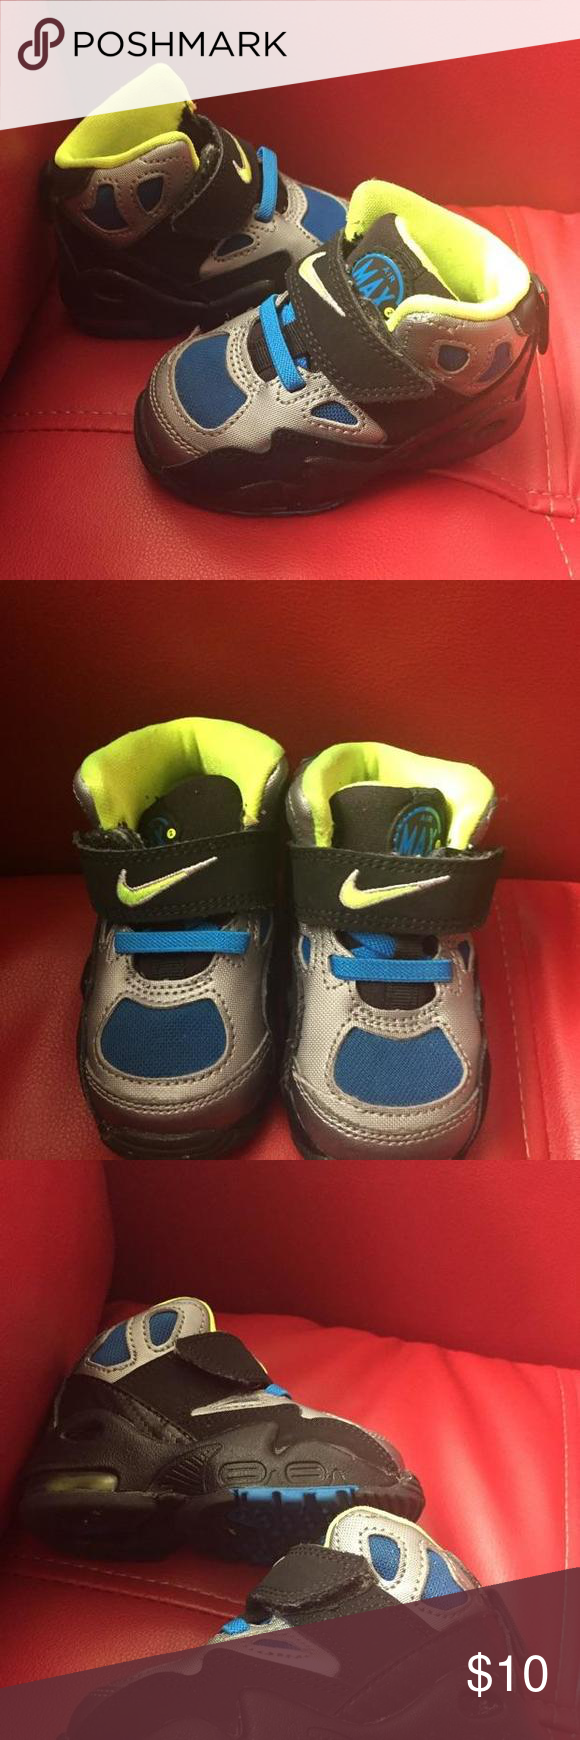 Air Max Nike High Tops Pinterest Nike high, Velcro straps and